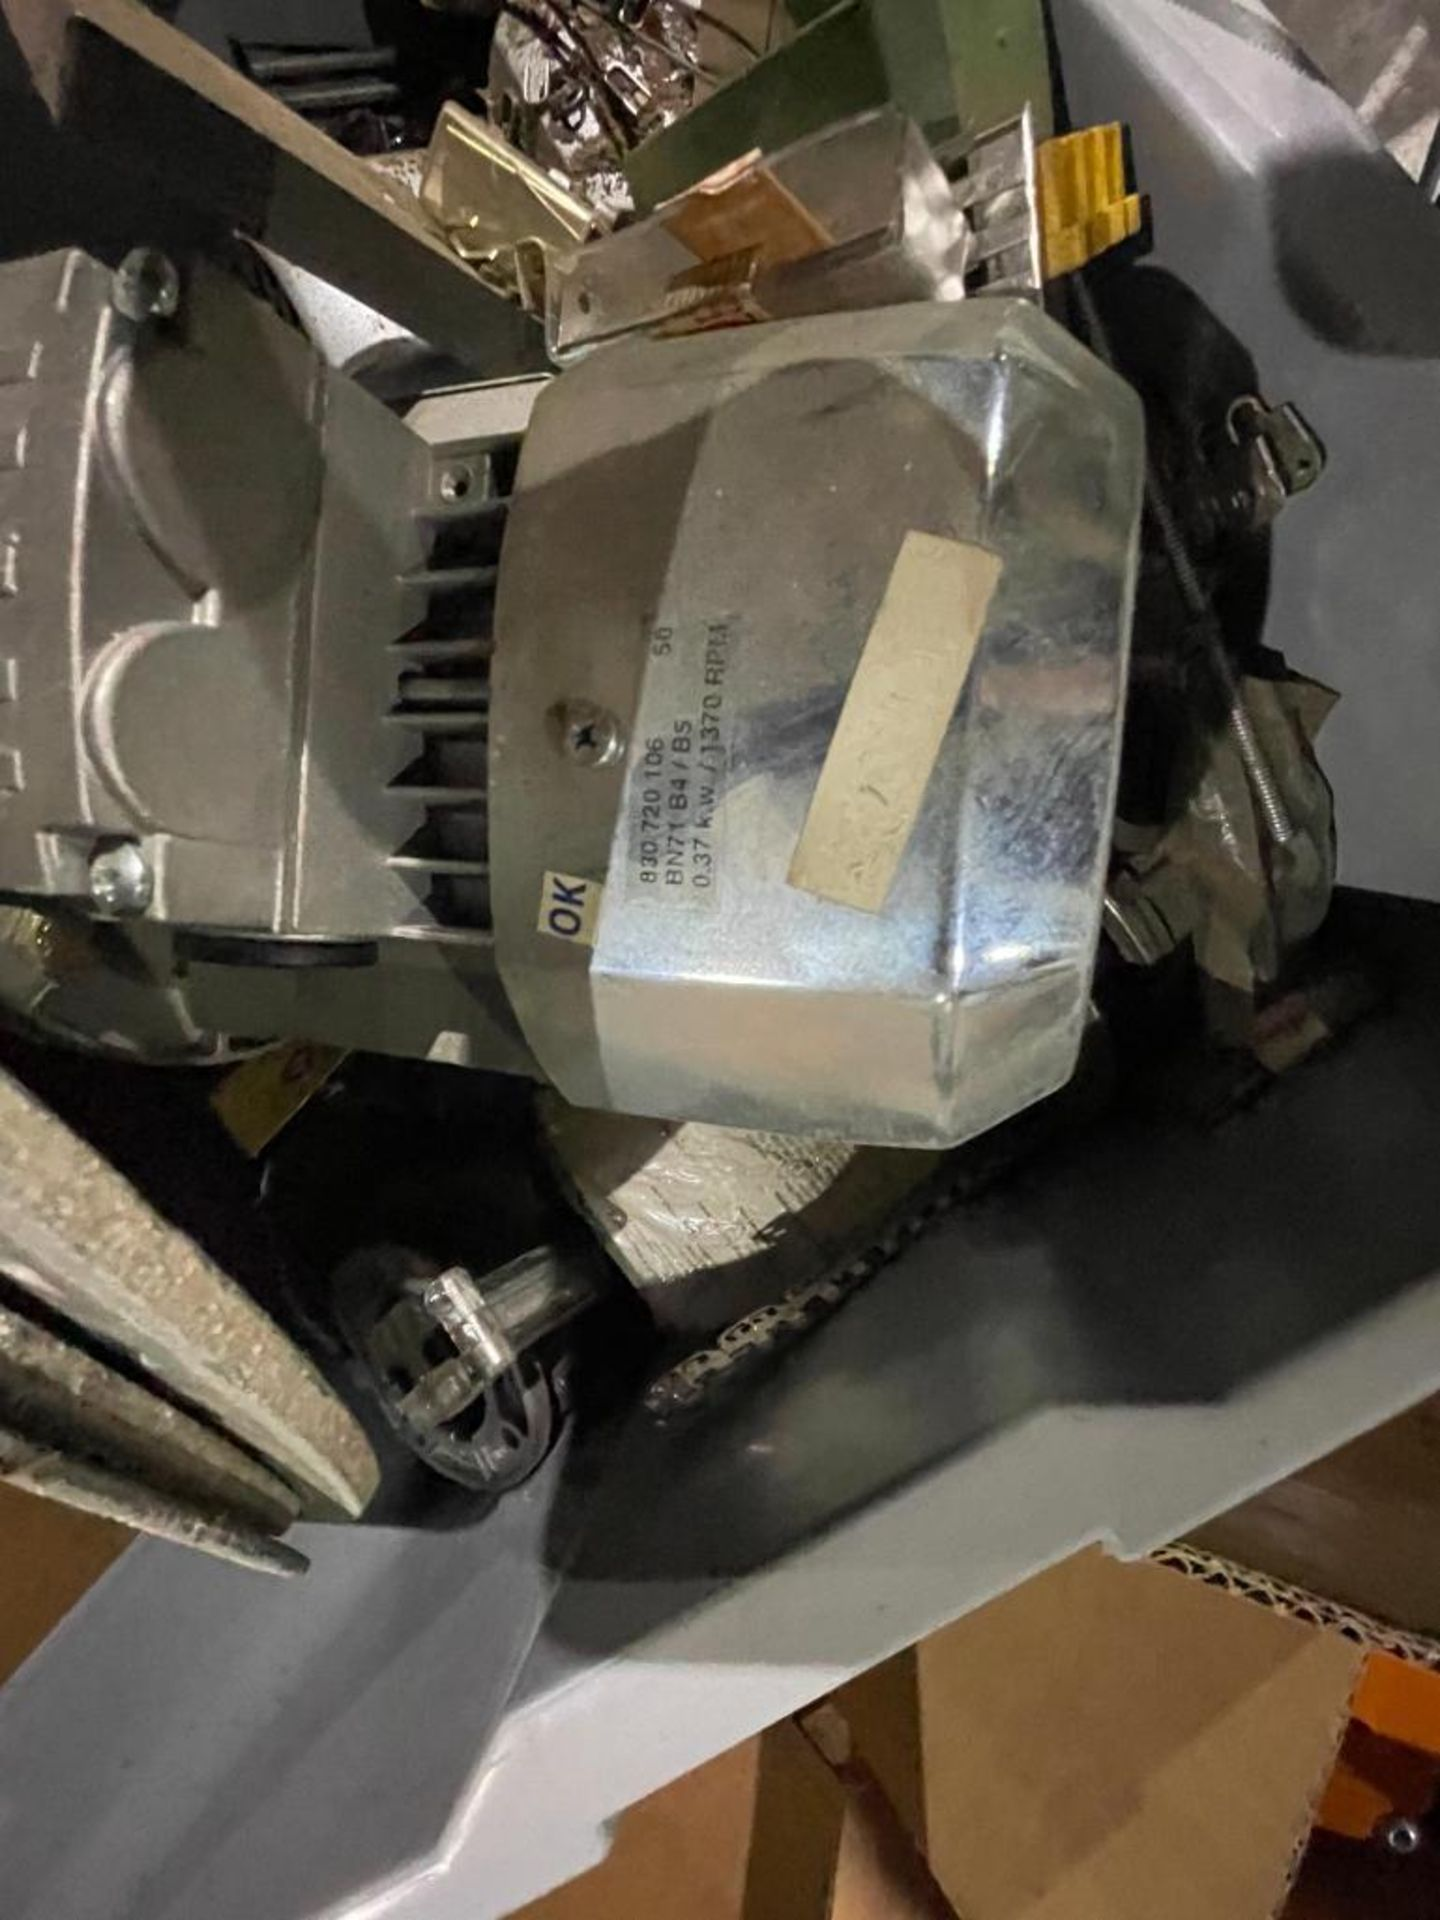 pallet of new and used motors and drives - Image 2 of 11